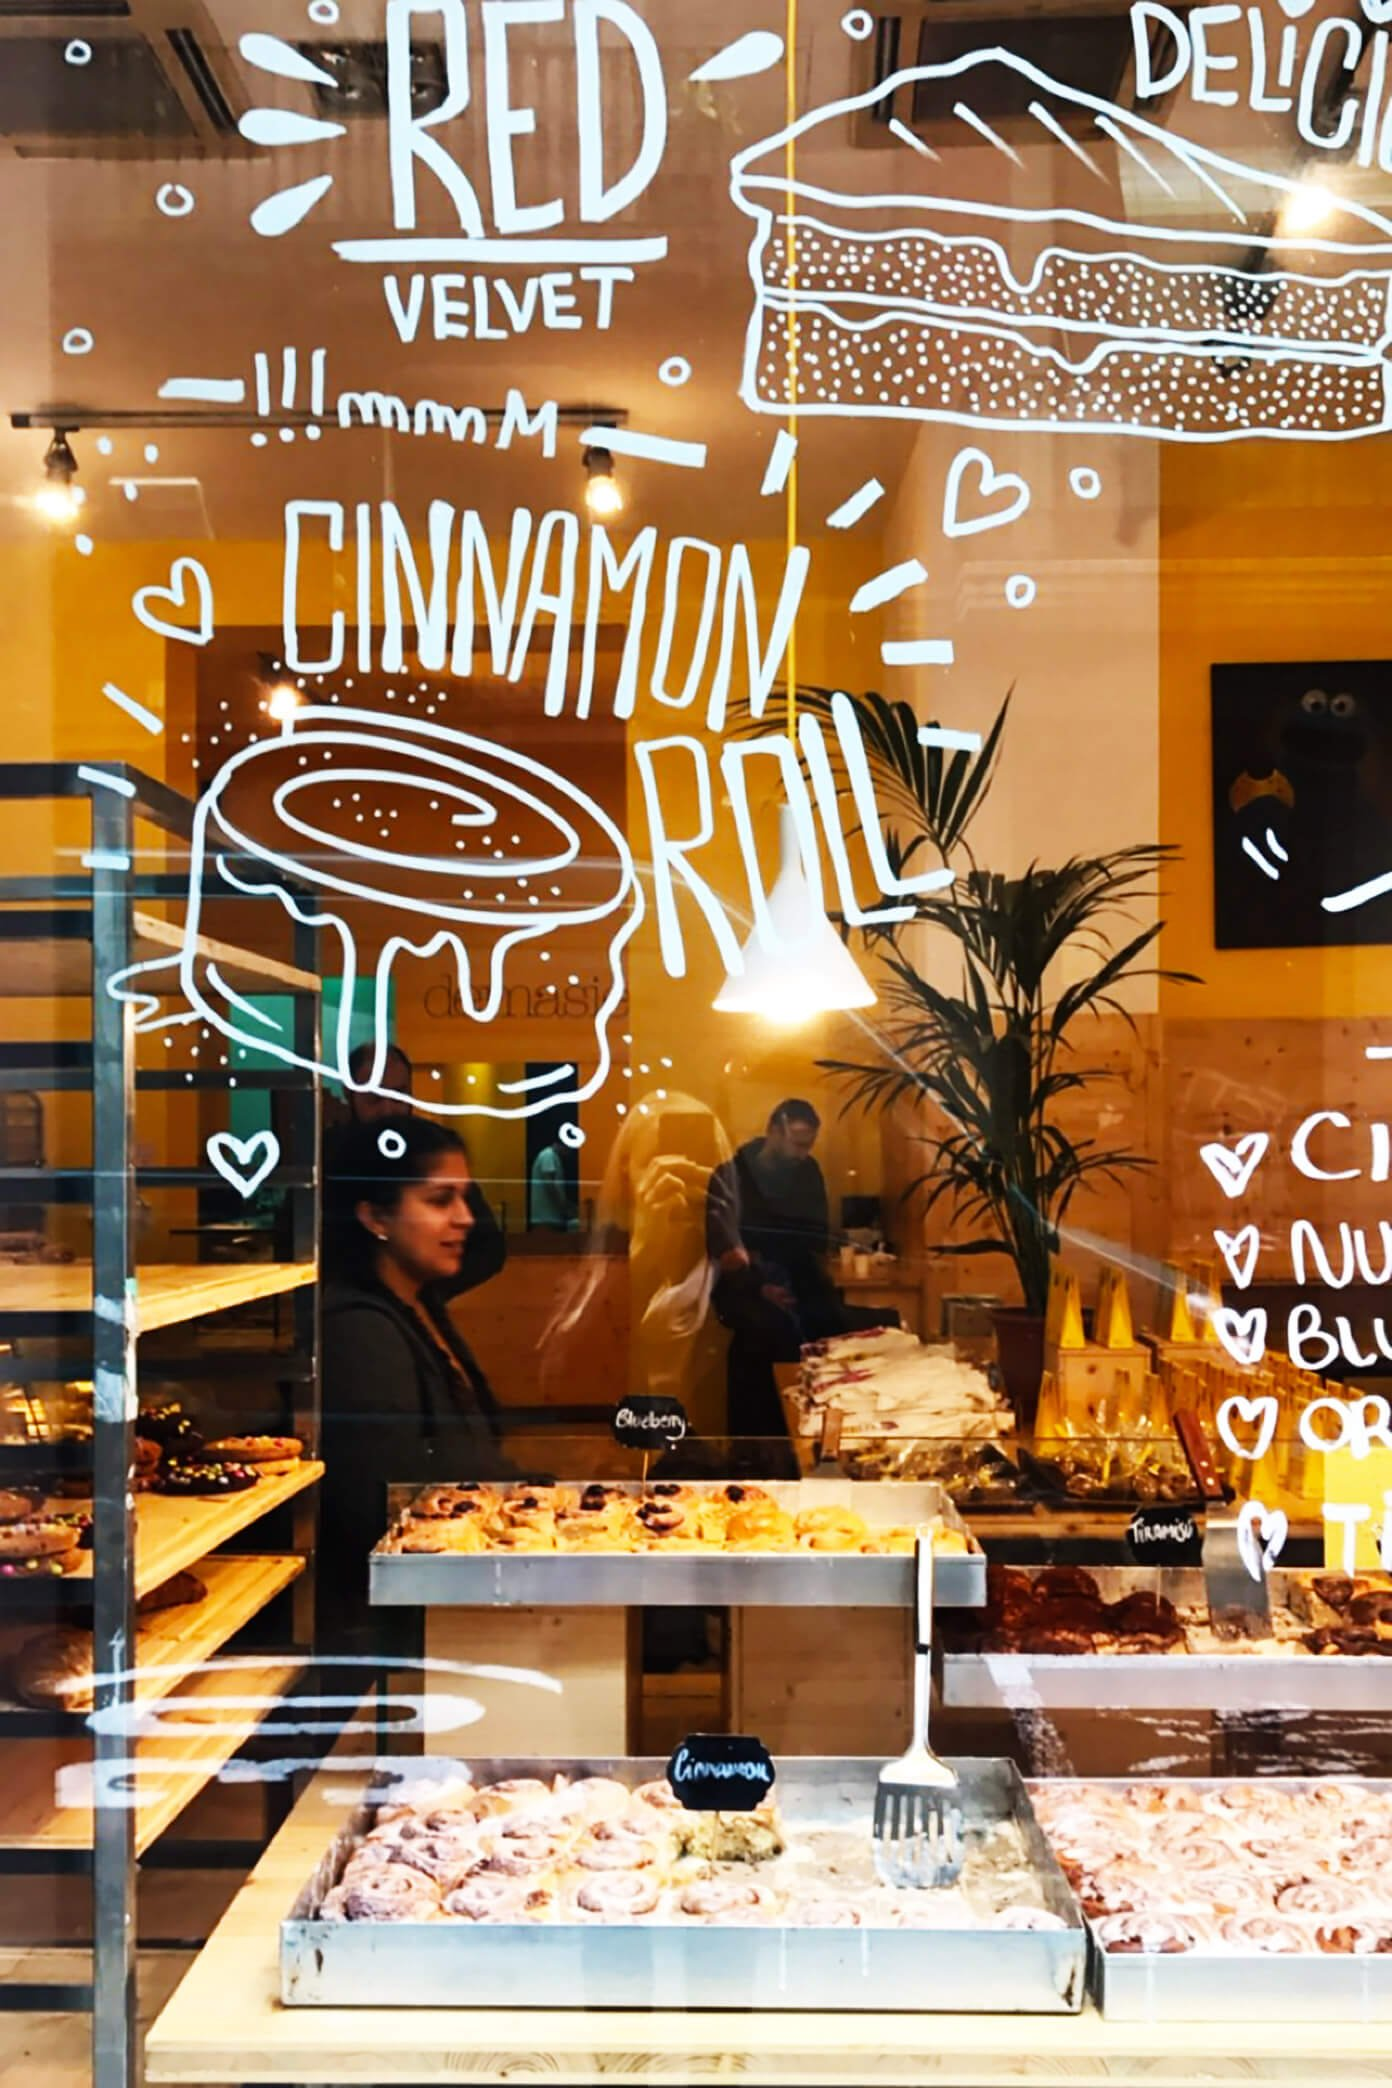 Demasie -- our favorite cinnamon roll shop in Barcelona! | Gimme Some Barcelona Travel Guide